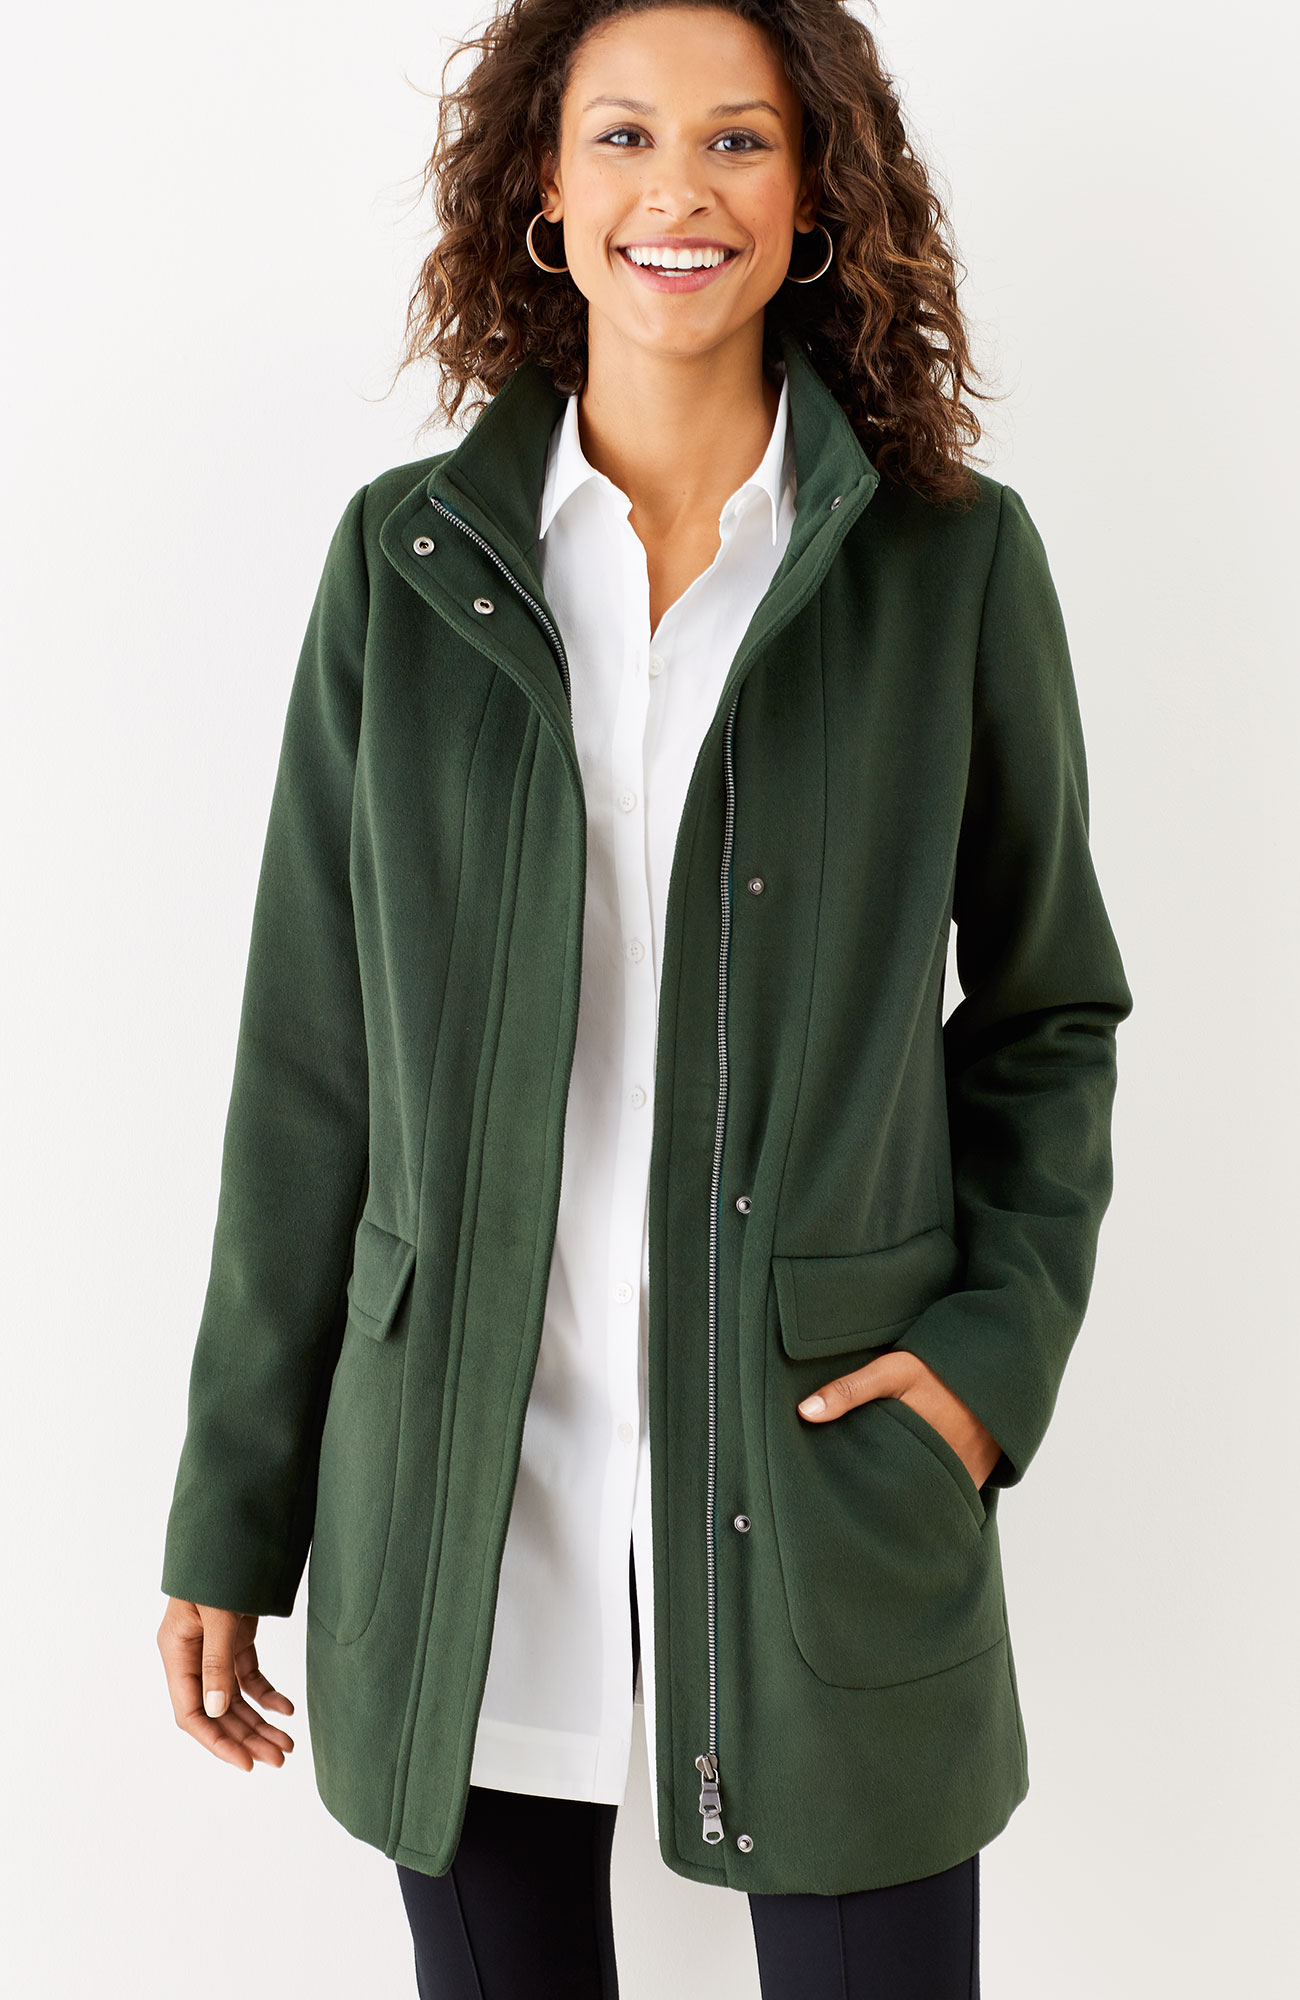 Cambridge coat